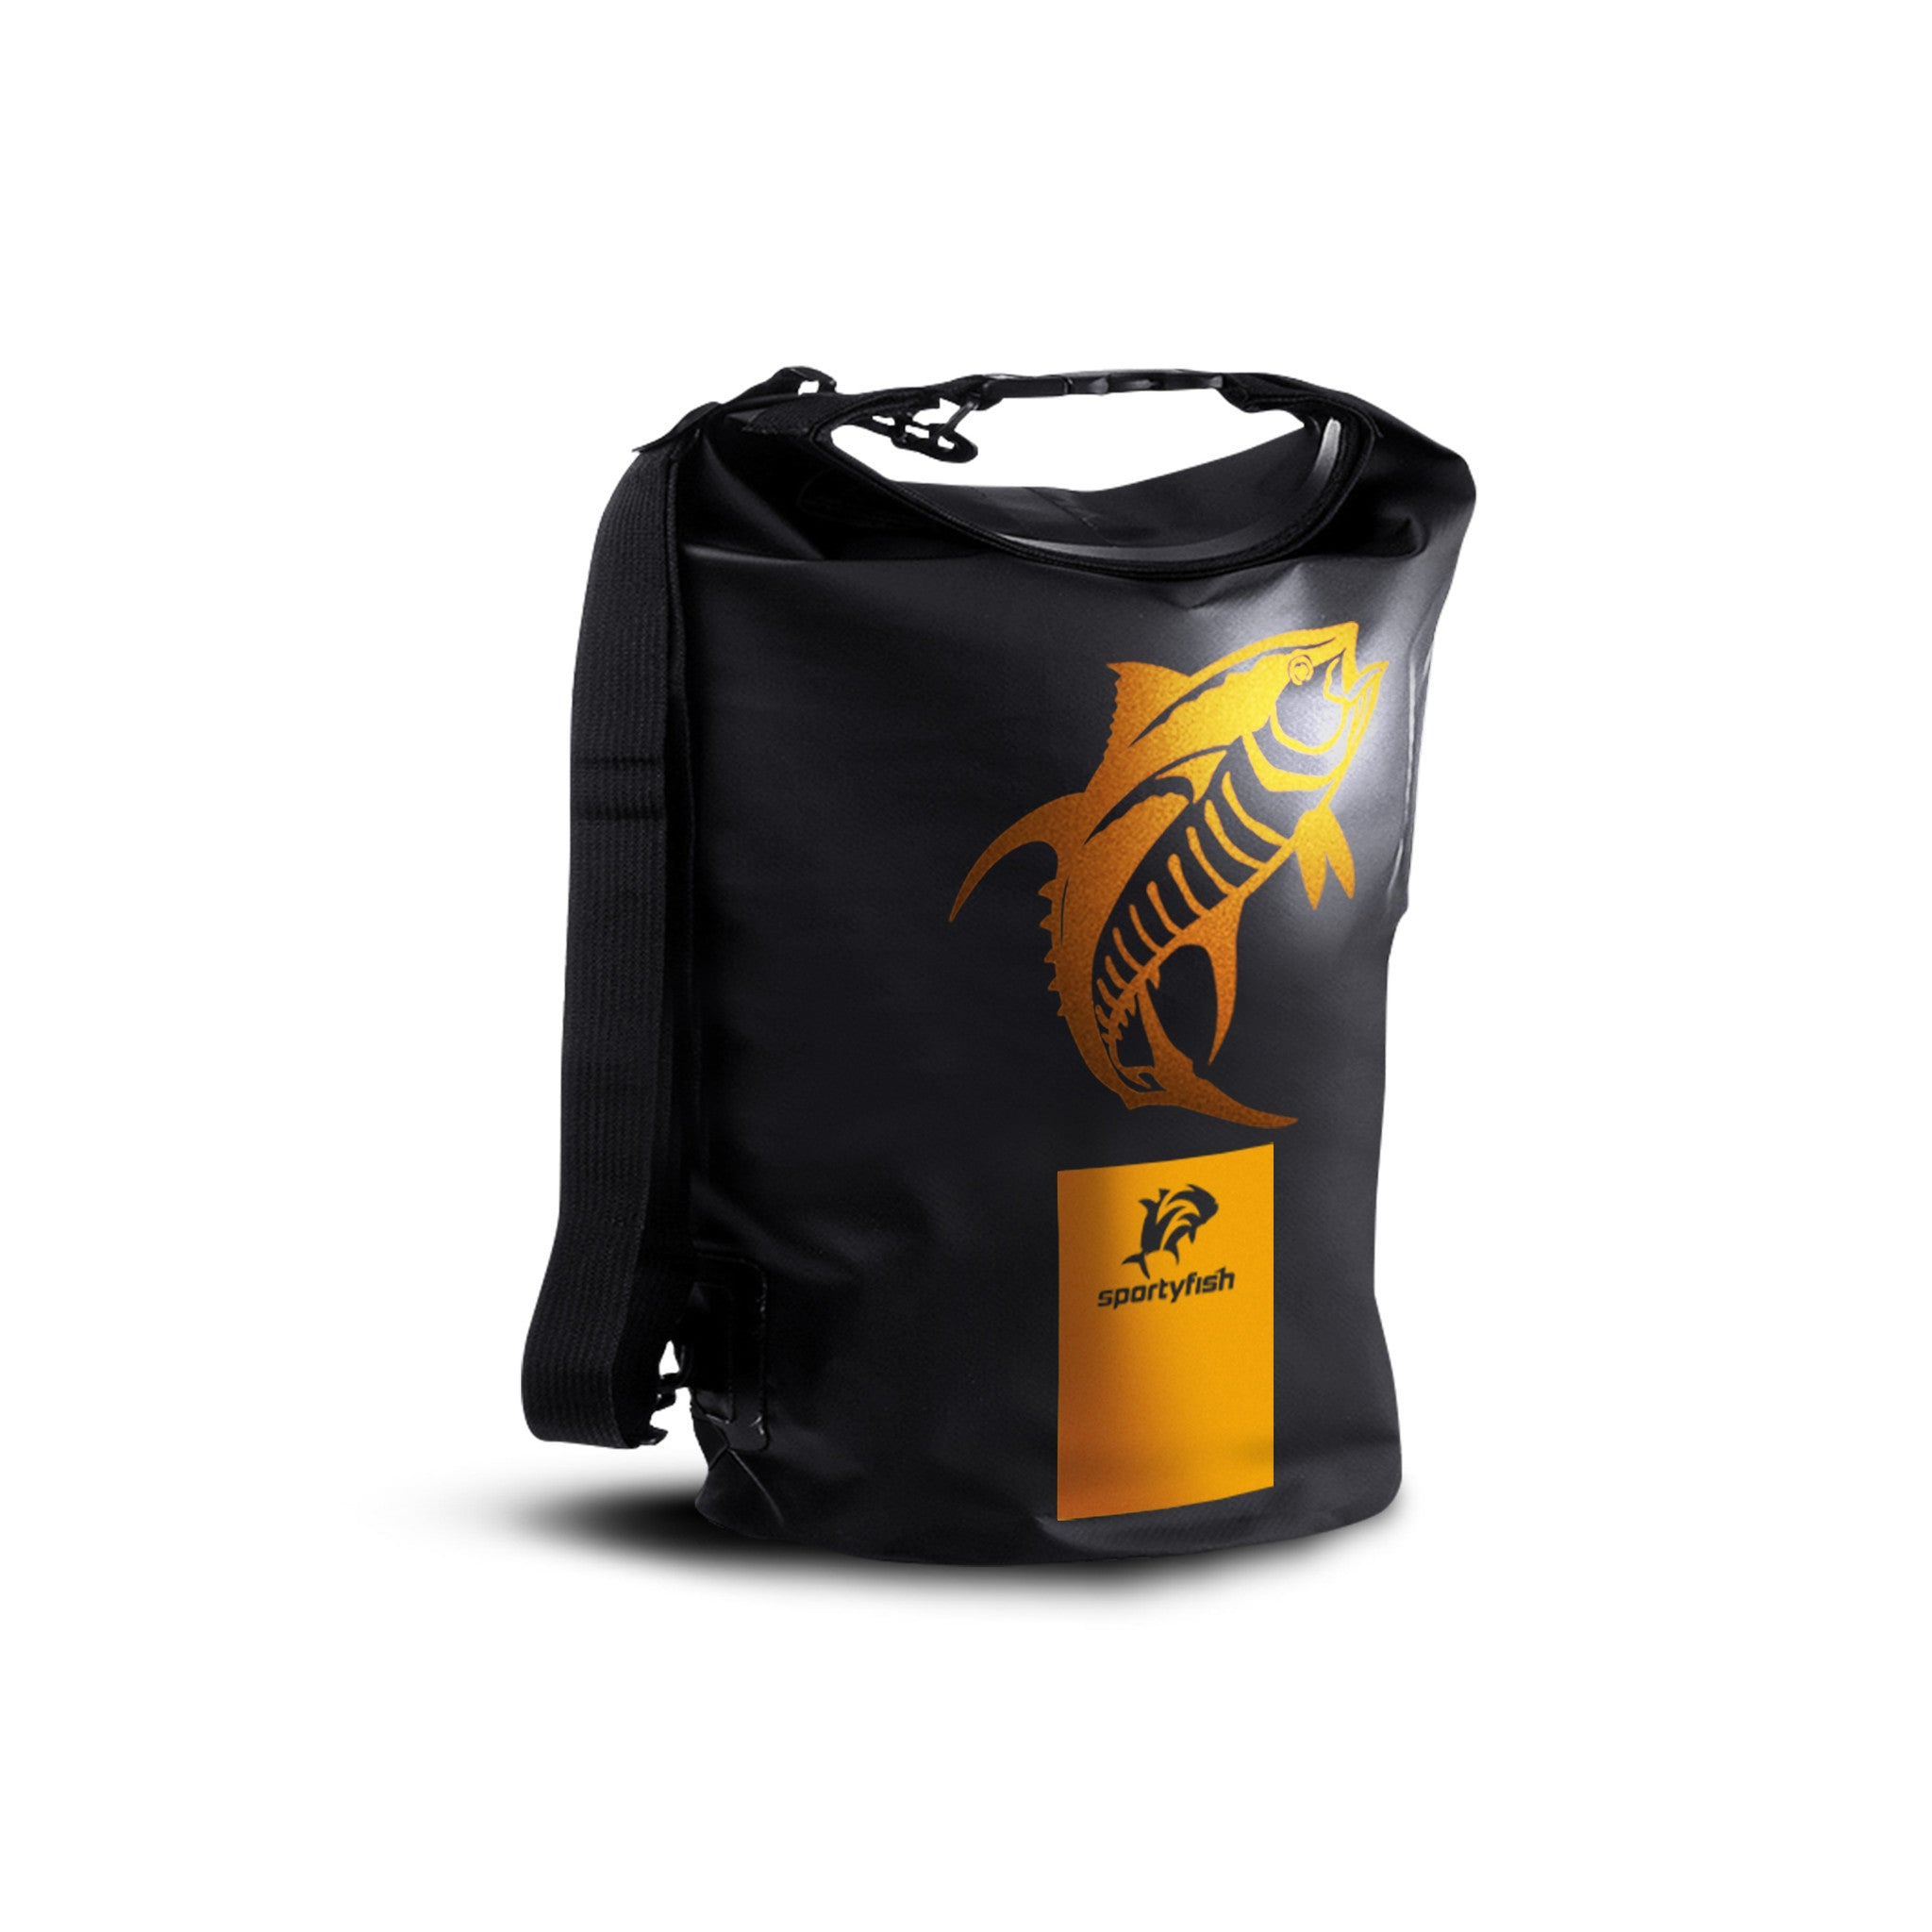 SportyFish Fury Series Dry Tube Bag: Yellowfin tuna